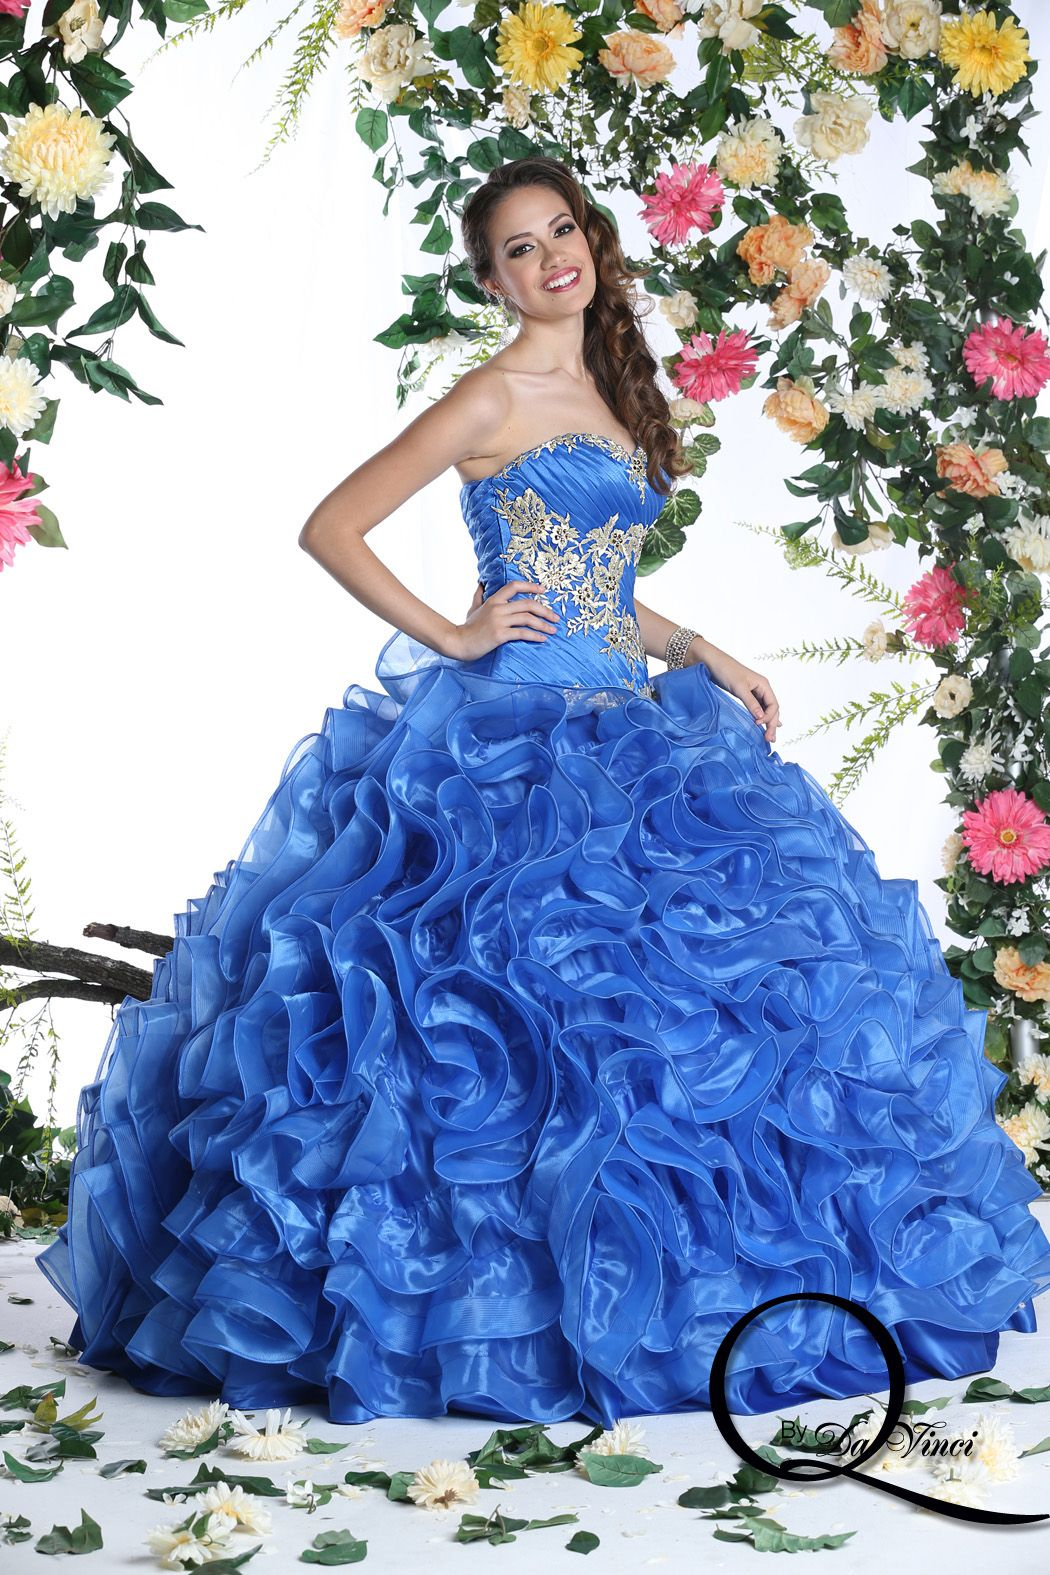 Park Art|My WordPress Blog_Royal Blue Quinceanera Dresses With Gold